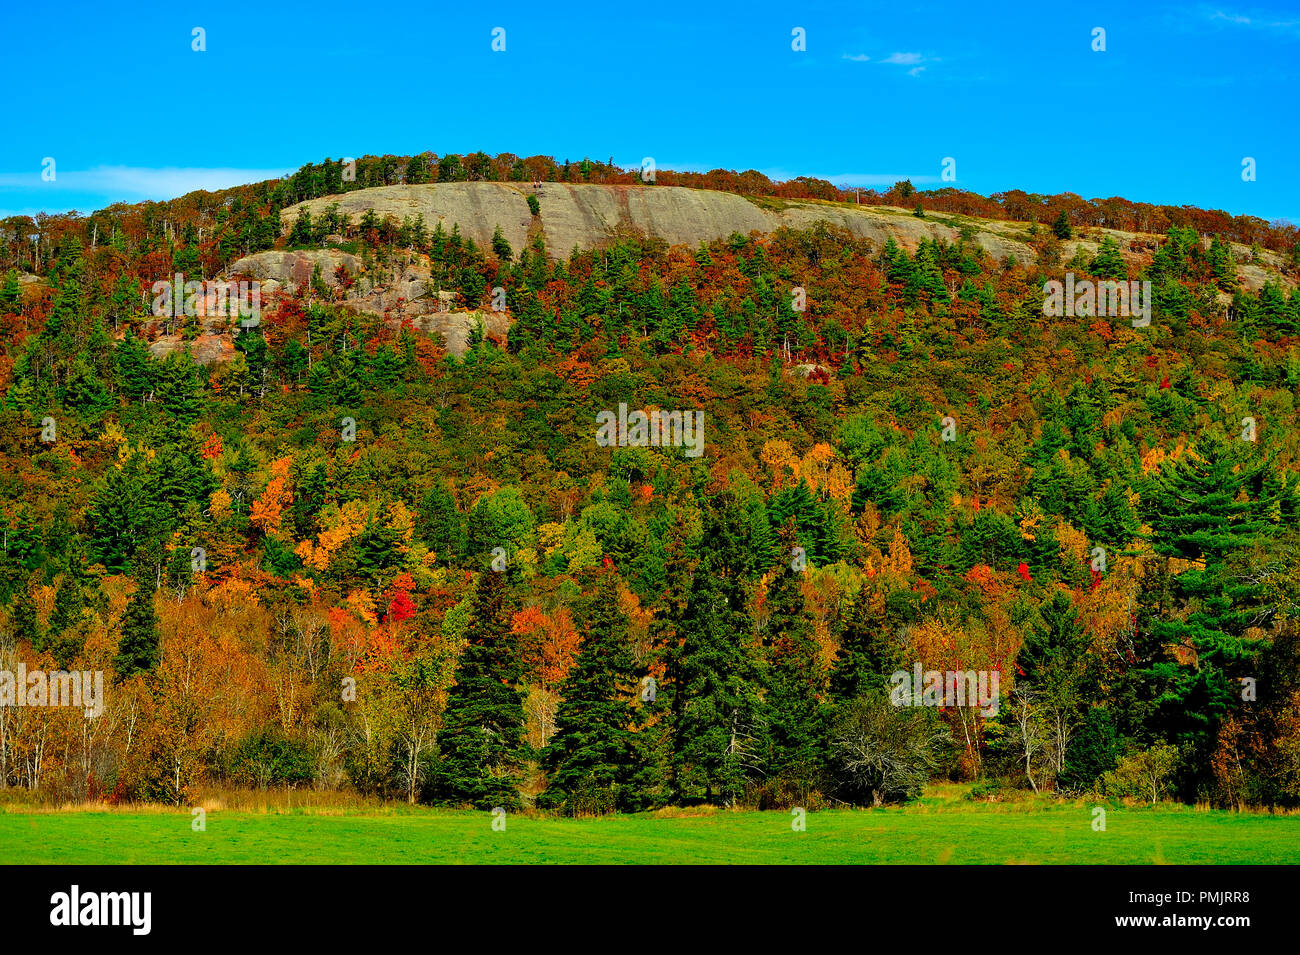 A fall landscape image of a rock hillside with its deciduous trees changing to the bright colours of an Atlantic Canada fall near Sussex New Brunswick - Stock Image